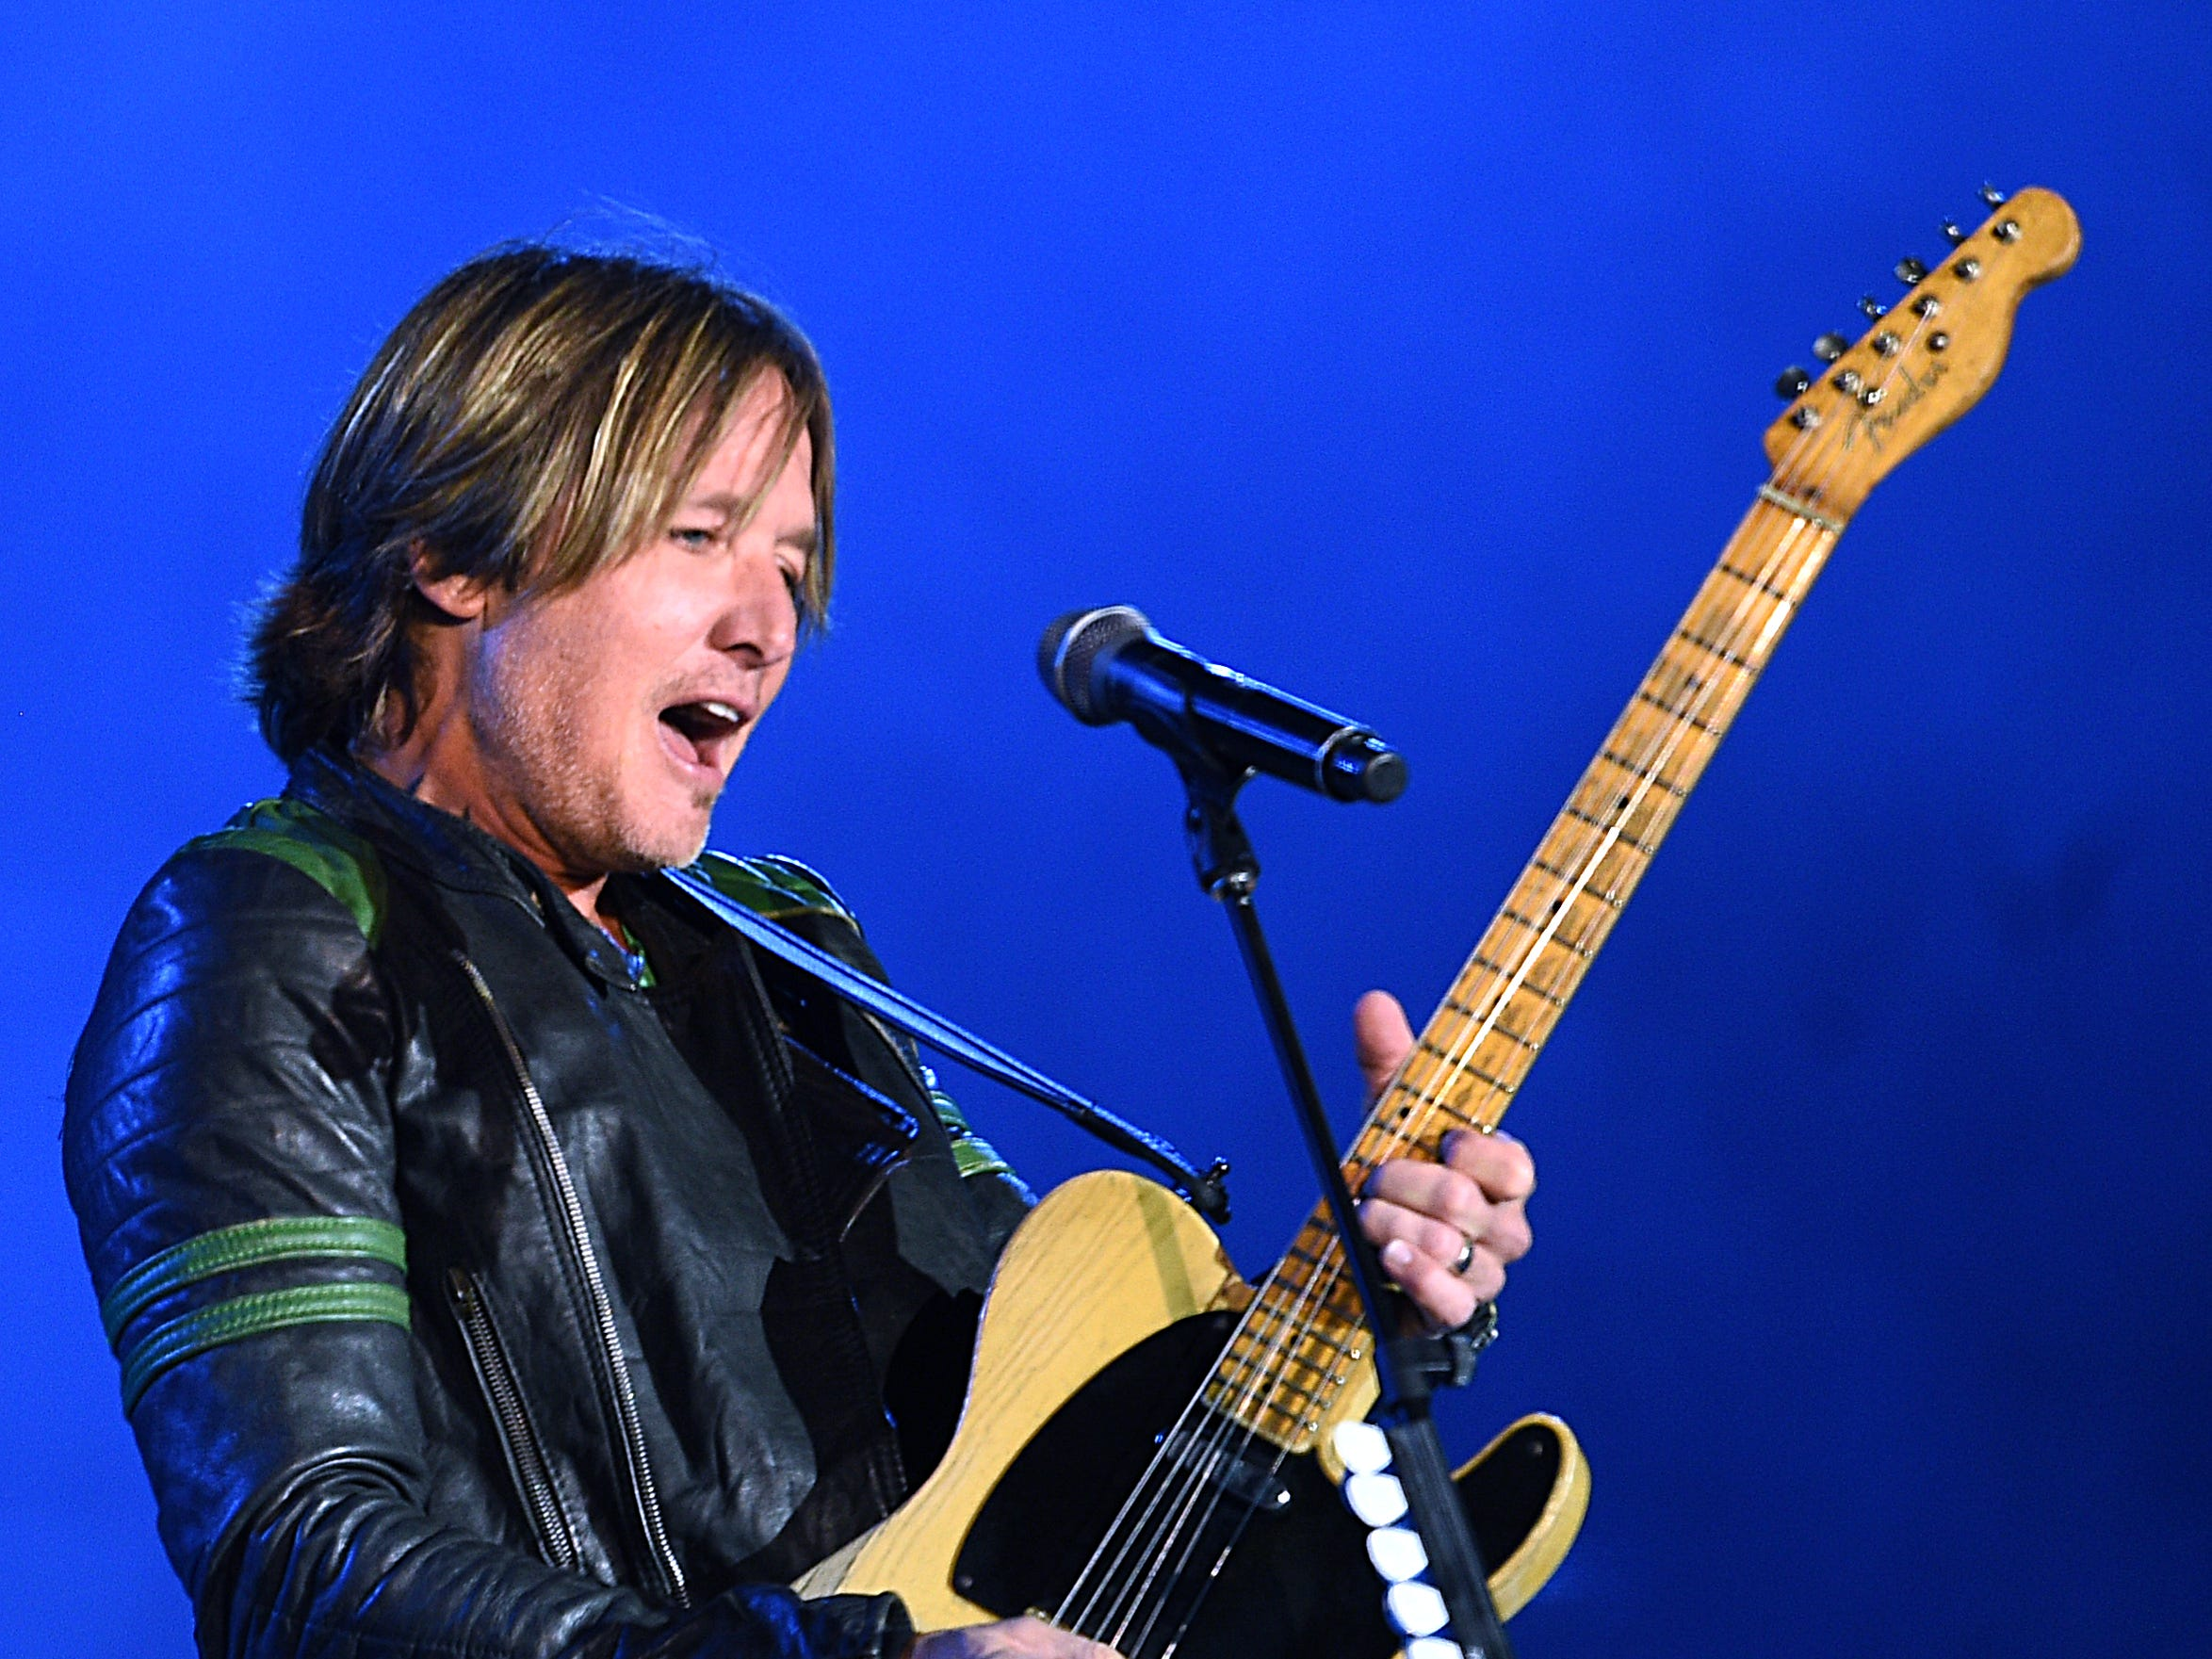 Keith Urban performs during Jack Daniel's Music City Midnight: New Year's Eve at  Bicentennial Capitol Mall State Park in  Nashville on Monday, Dec. 31, 2018.